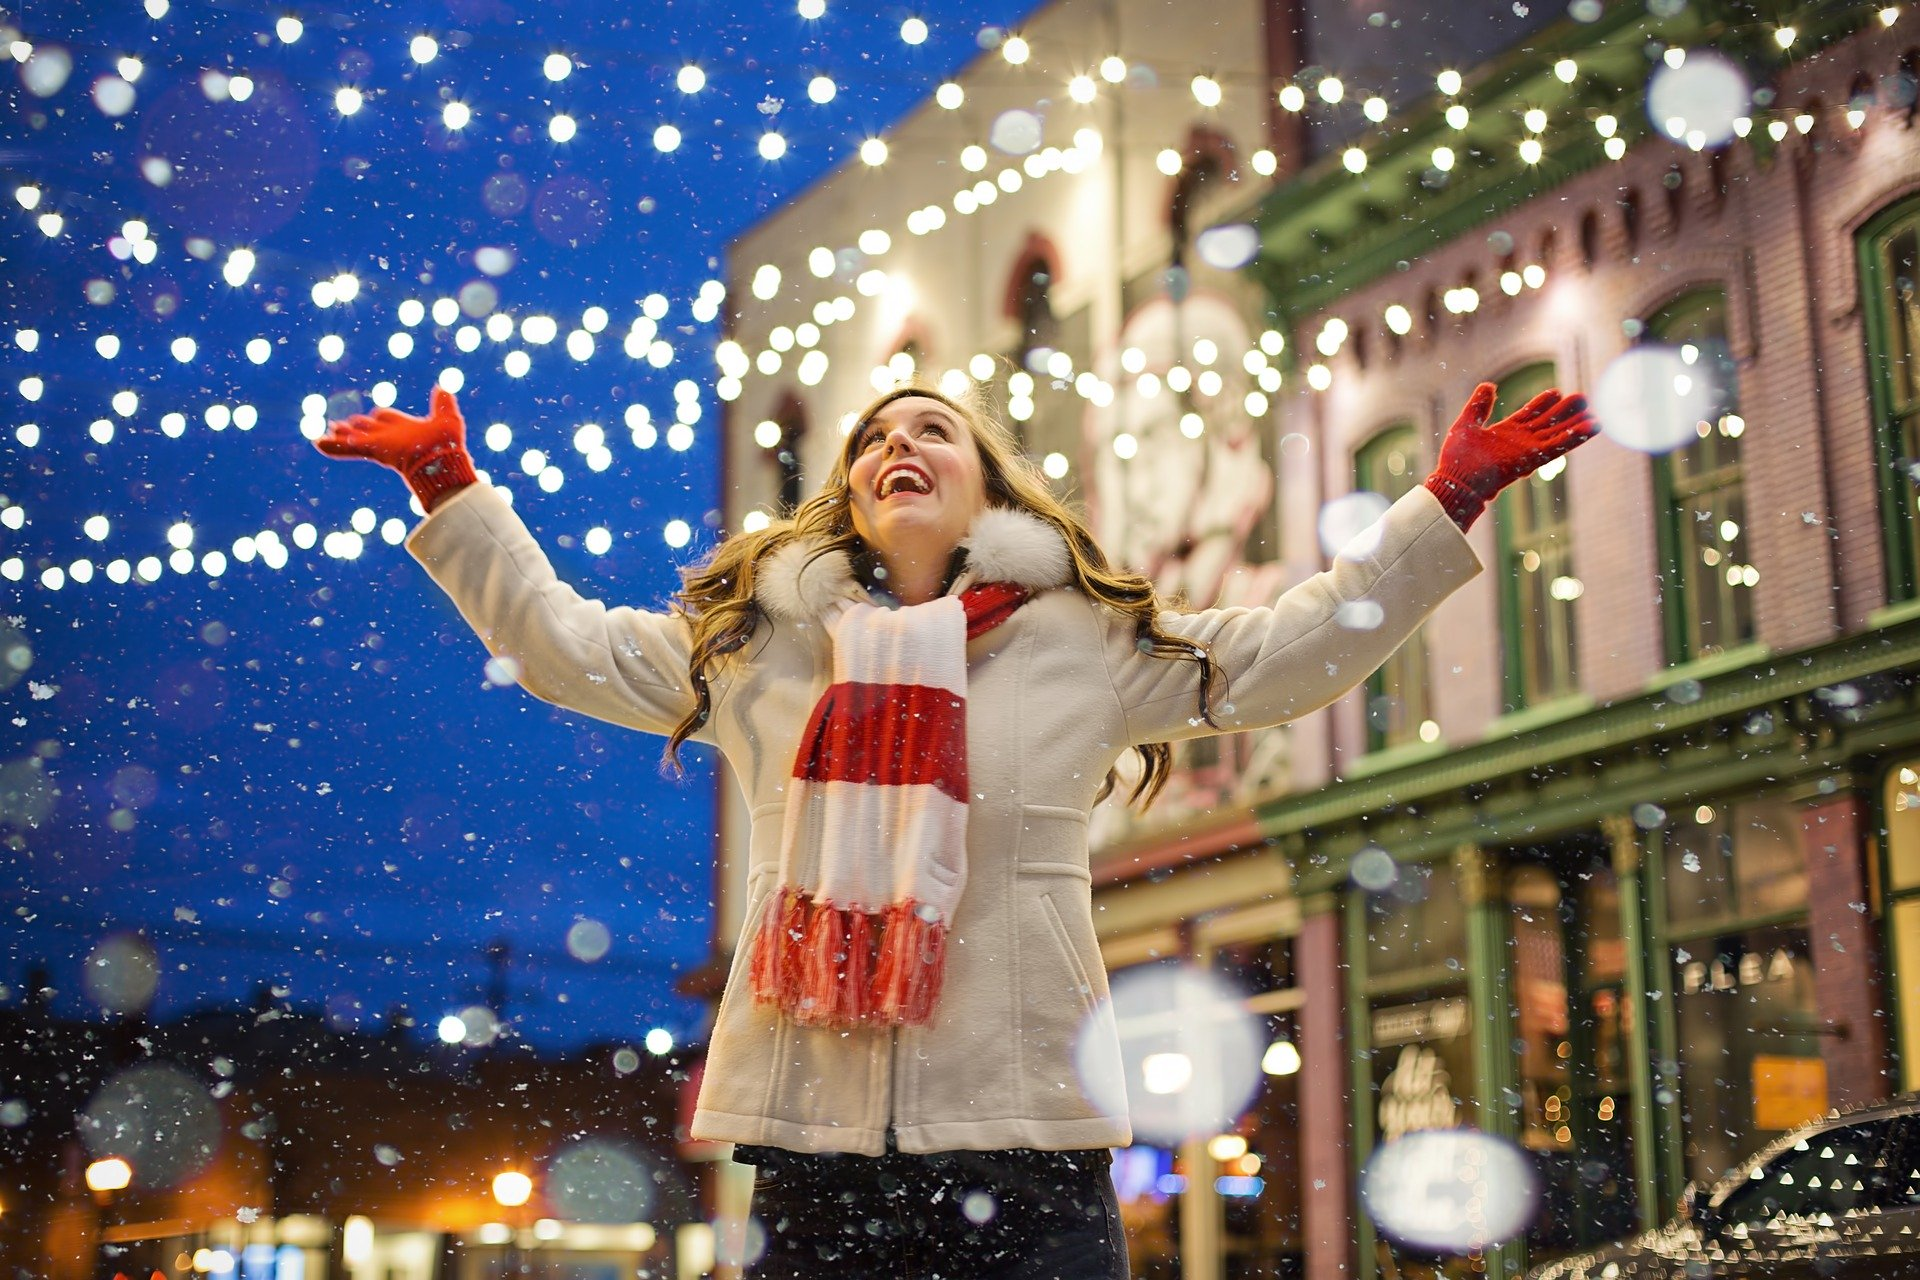 Woman raising her arms in the city during Christmas Holidays